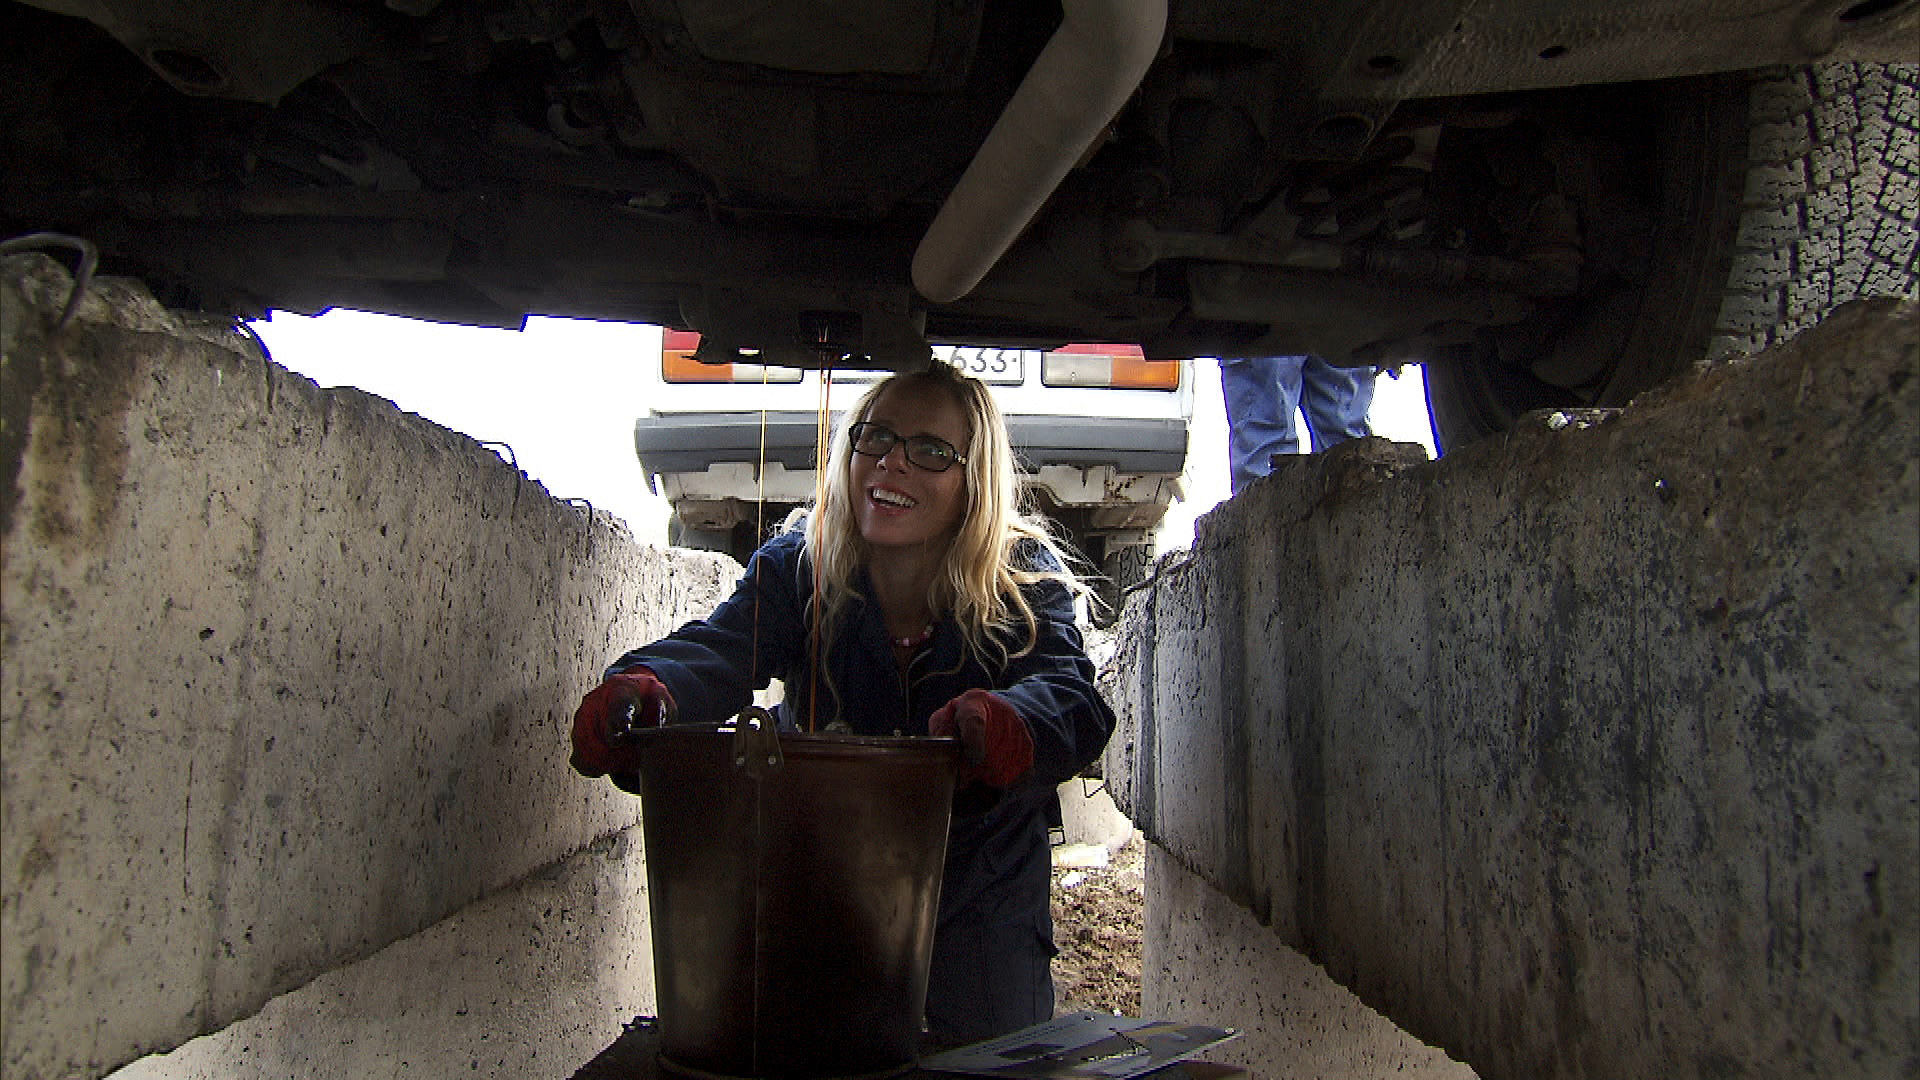 At the Roadblock, Sheri gets under the hood of a stopped taxi.